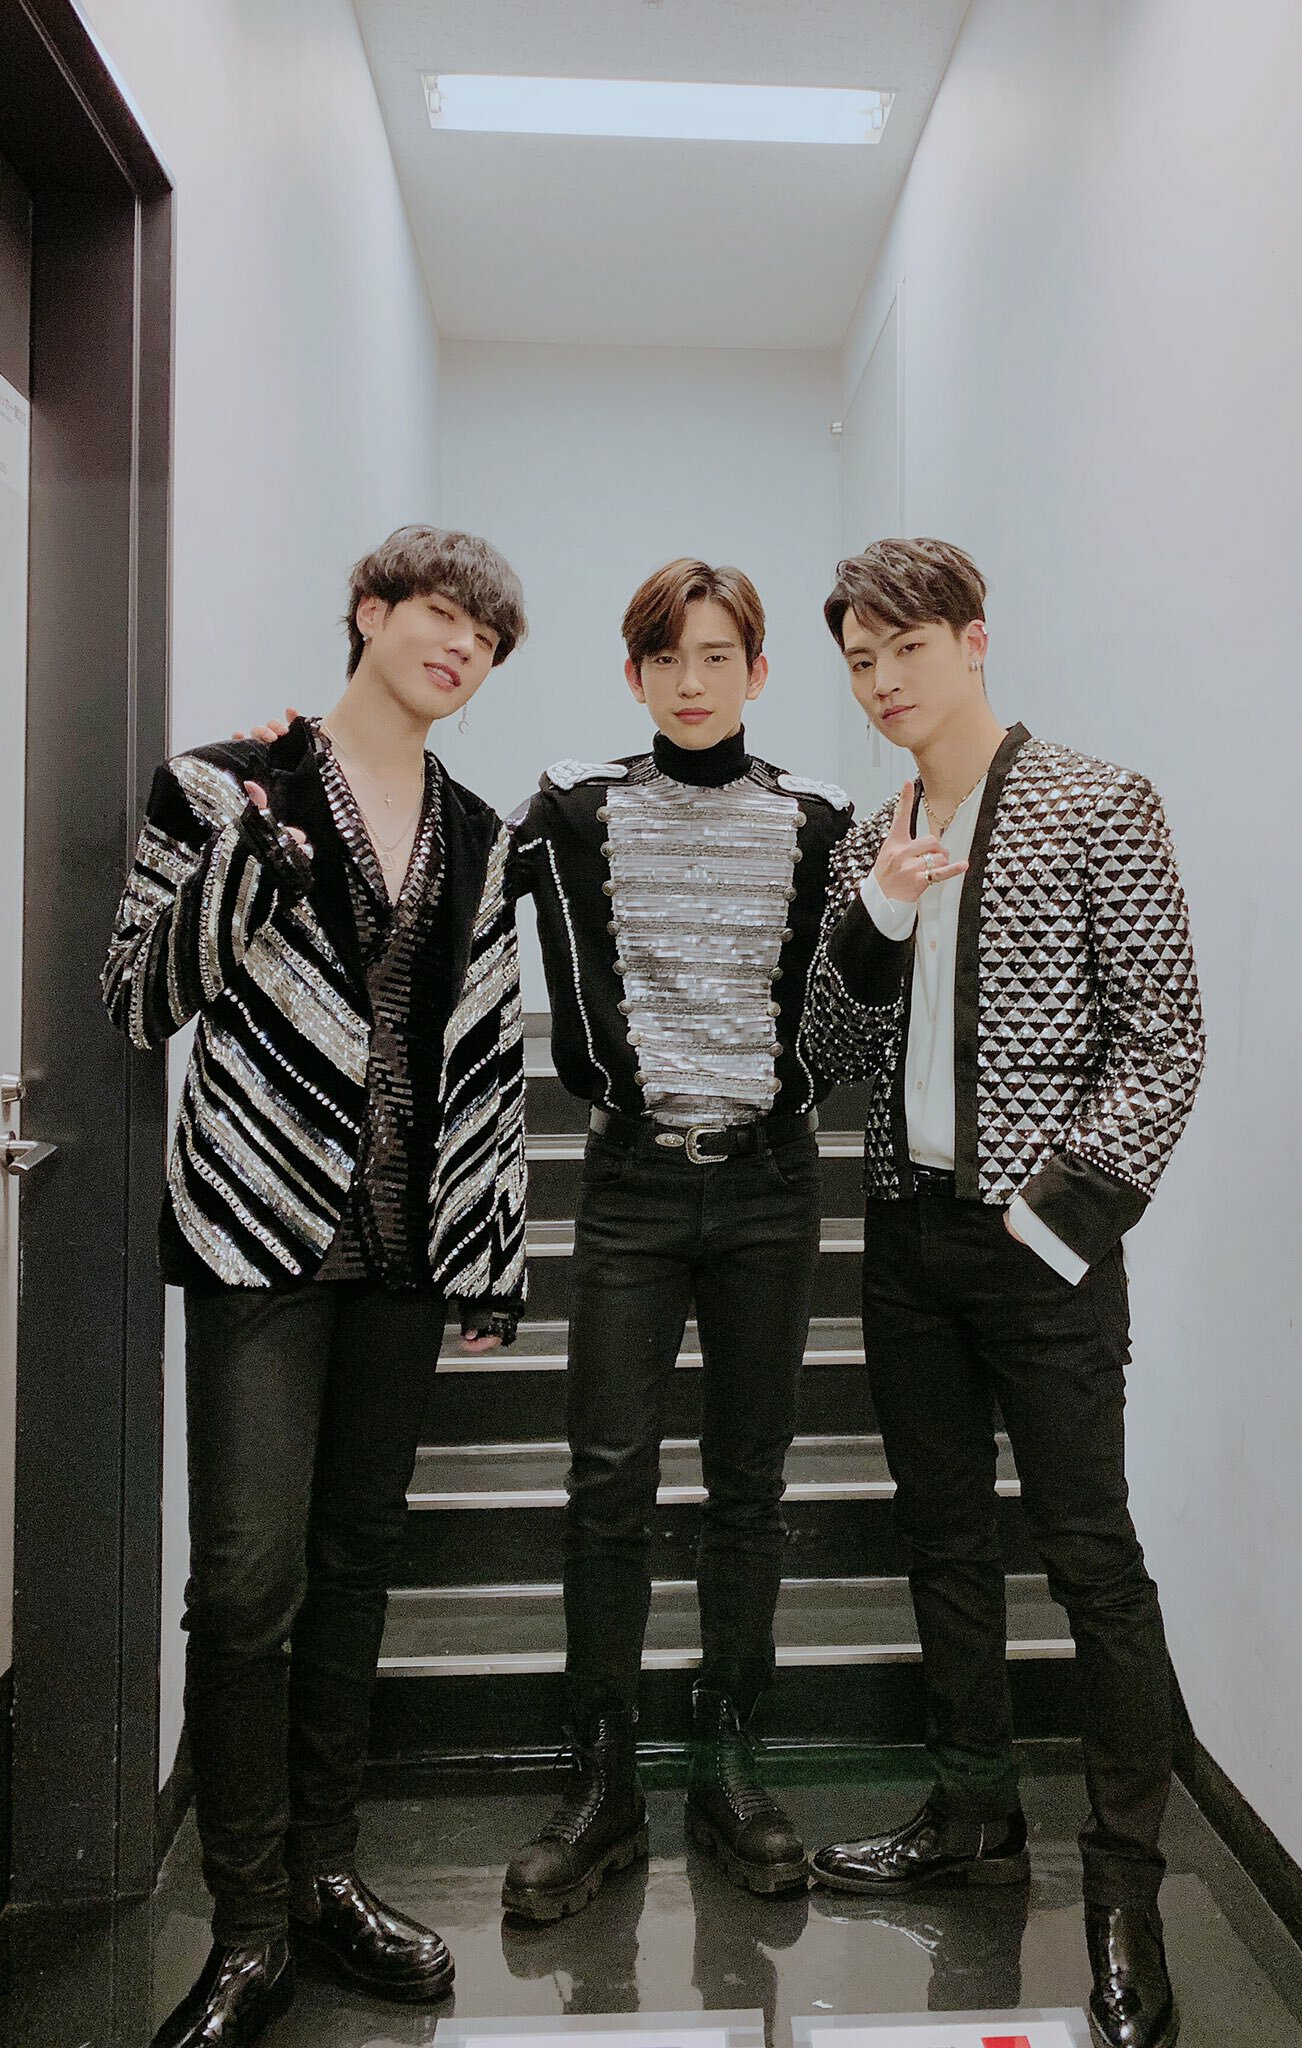 PIC] 181212 GOT7 Official Twitter – JB, Jinyoung & Yugyeom